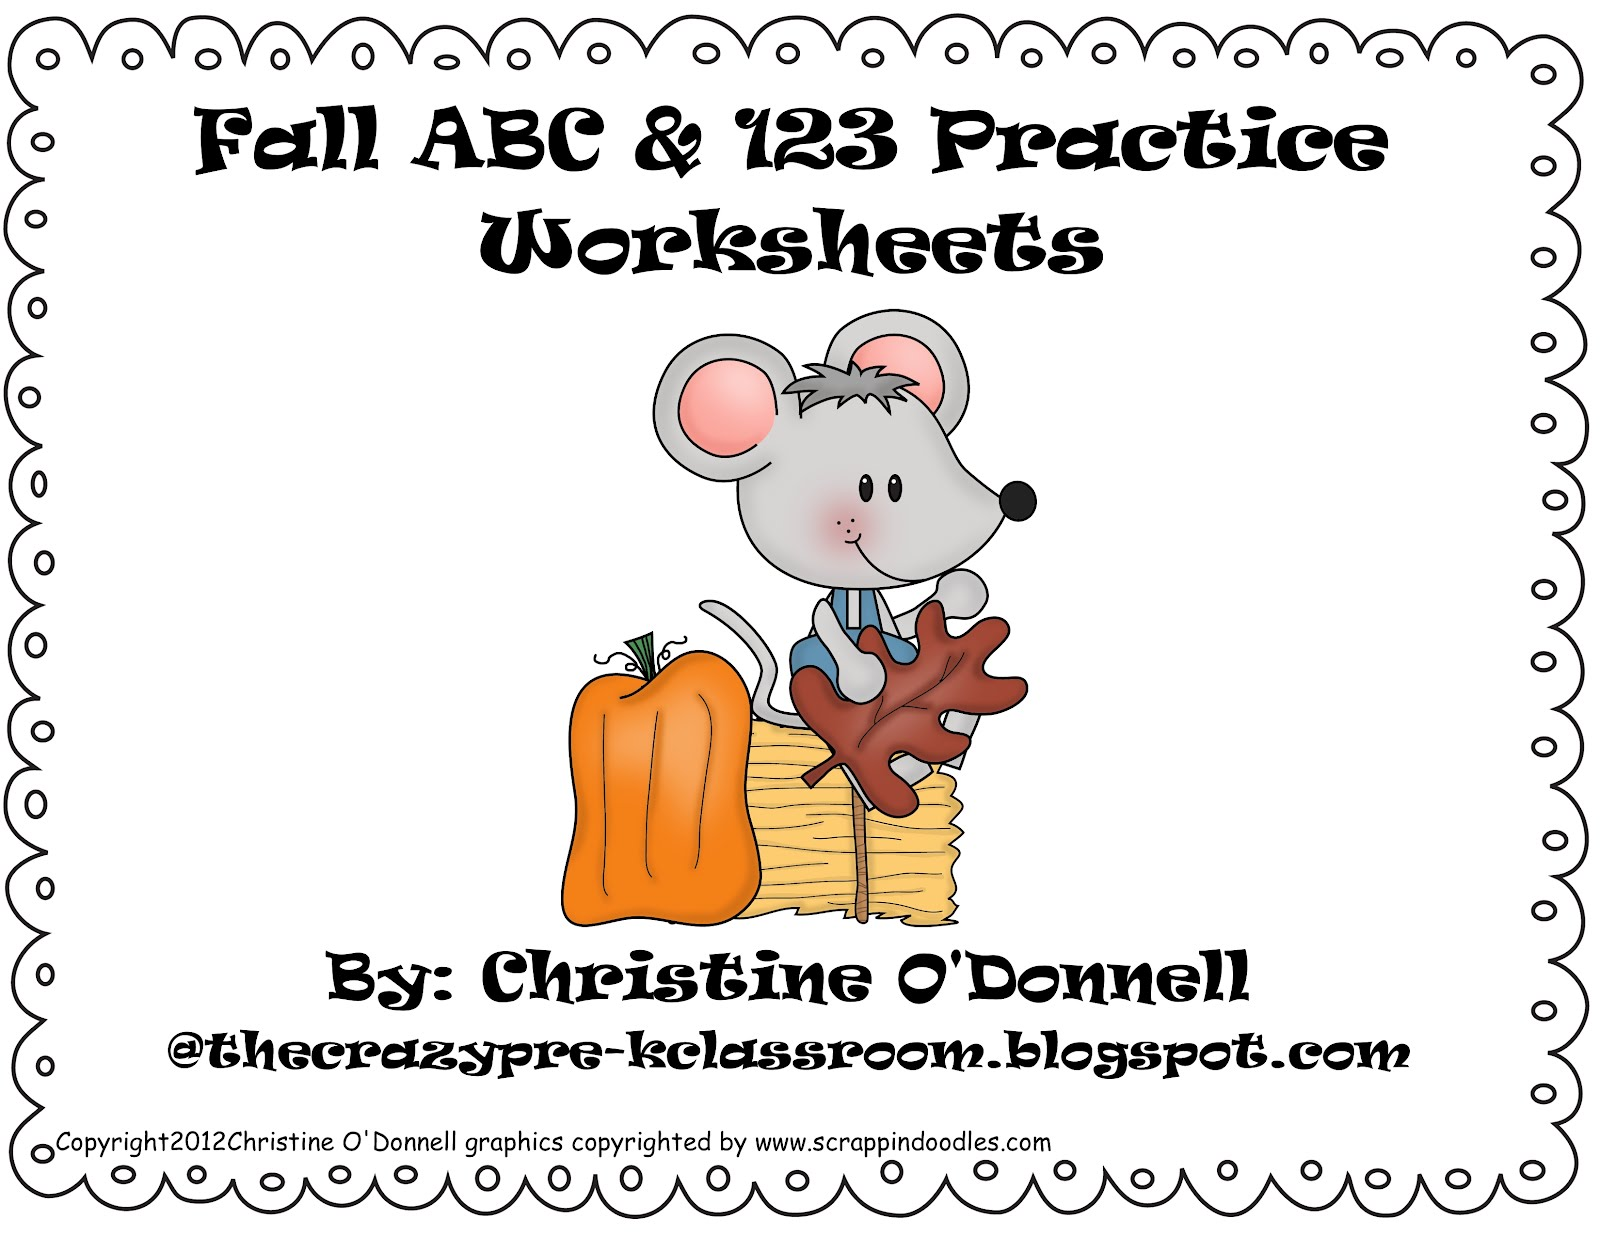 small resolution of The Crazy Pre-K Classroom: Fall Freebie! Fall themed ABC and 123 Worksheets!  Deanna Jump reaches $1